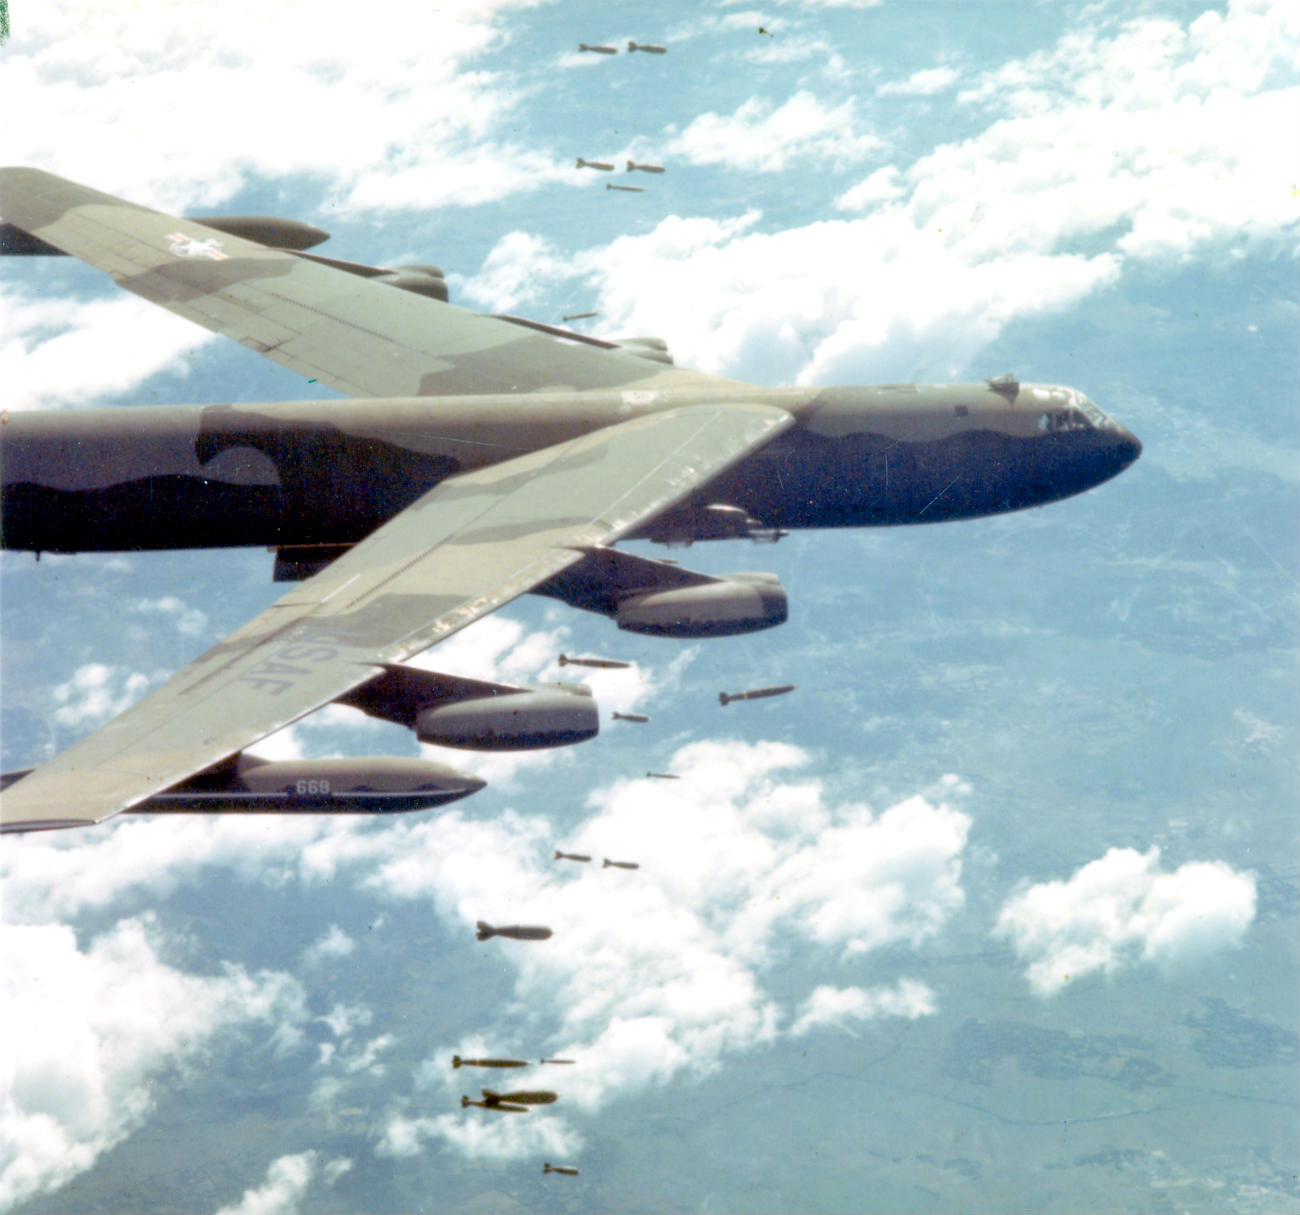 Boeing B 52 Stratofortress Of The U S Air Force History: Captivating Images Of Old Military Aircraft